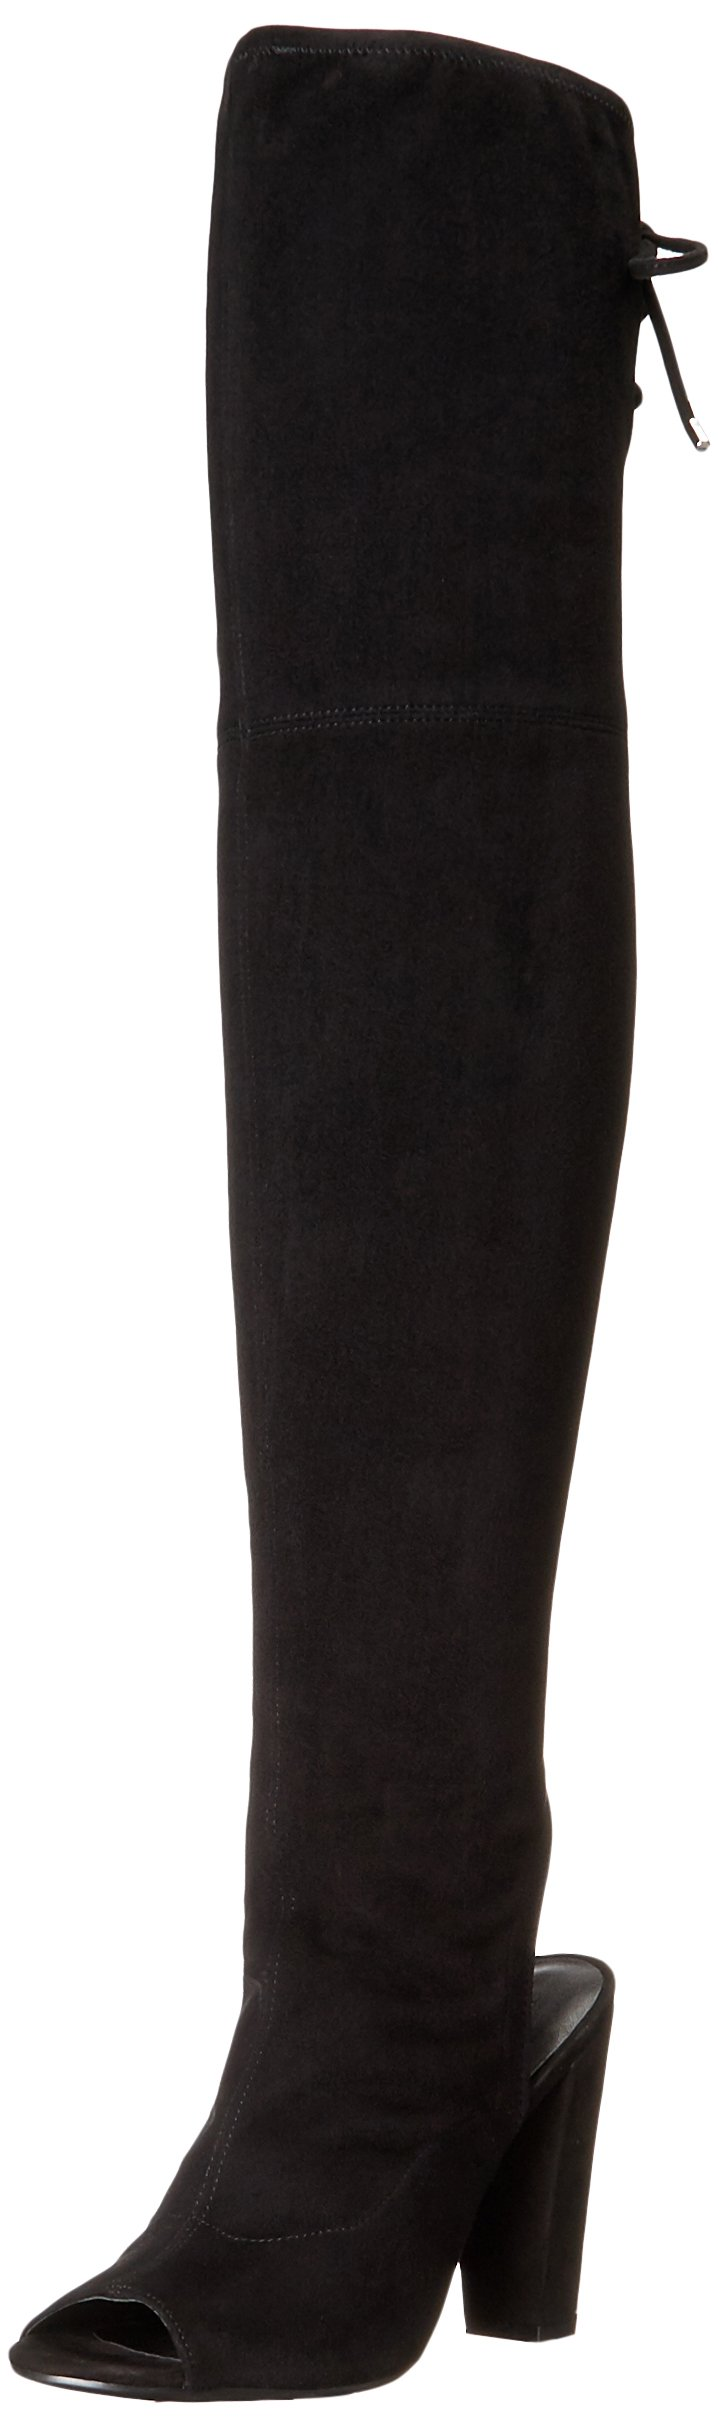 GUESS Women's Galle Riding Boot, Black, 7.5 M US